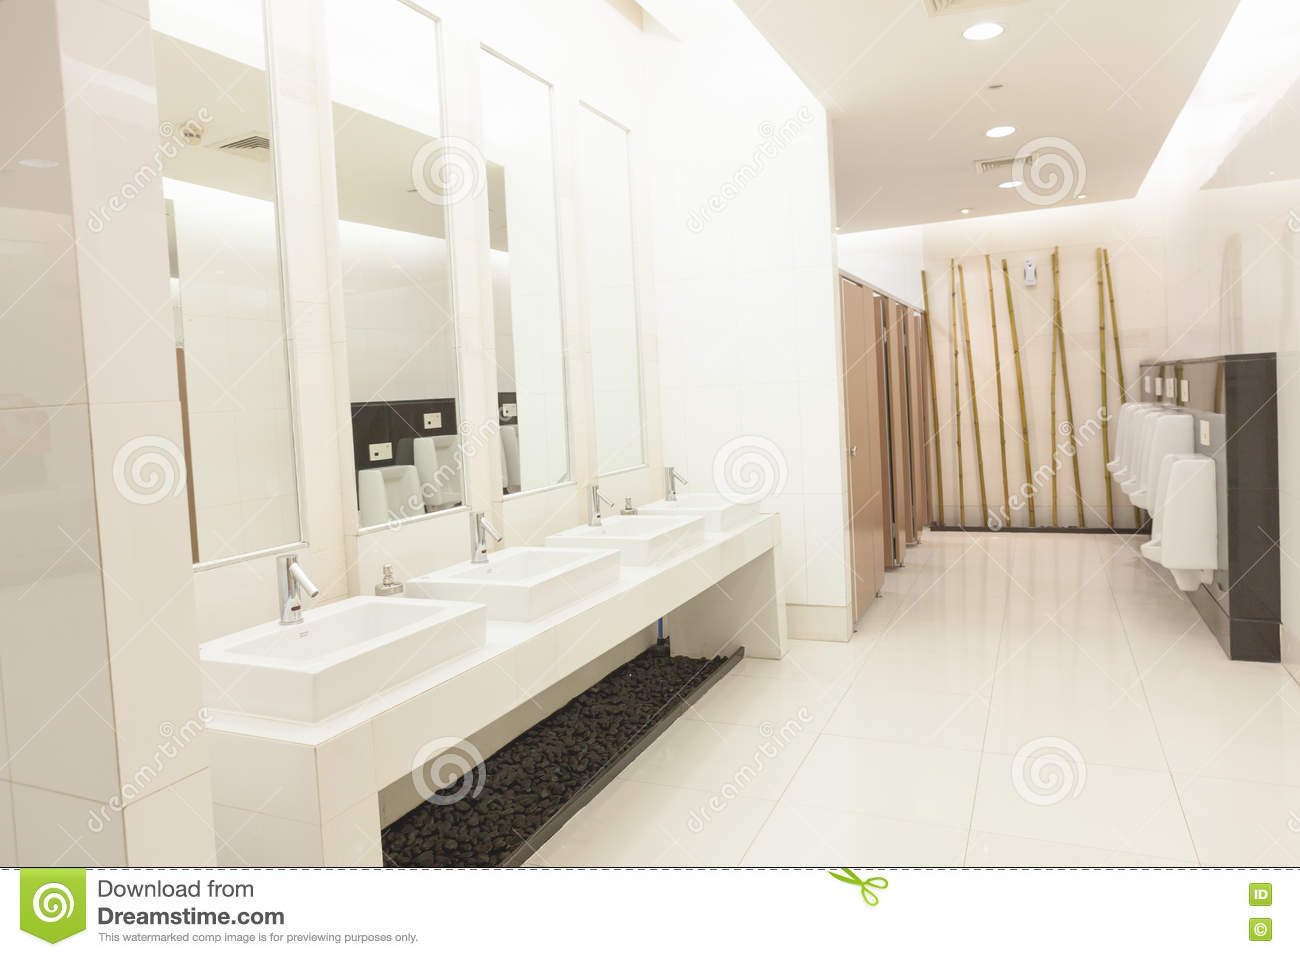 Commercial bathroom. stock photo. Image of corporate - 73021686